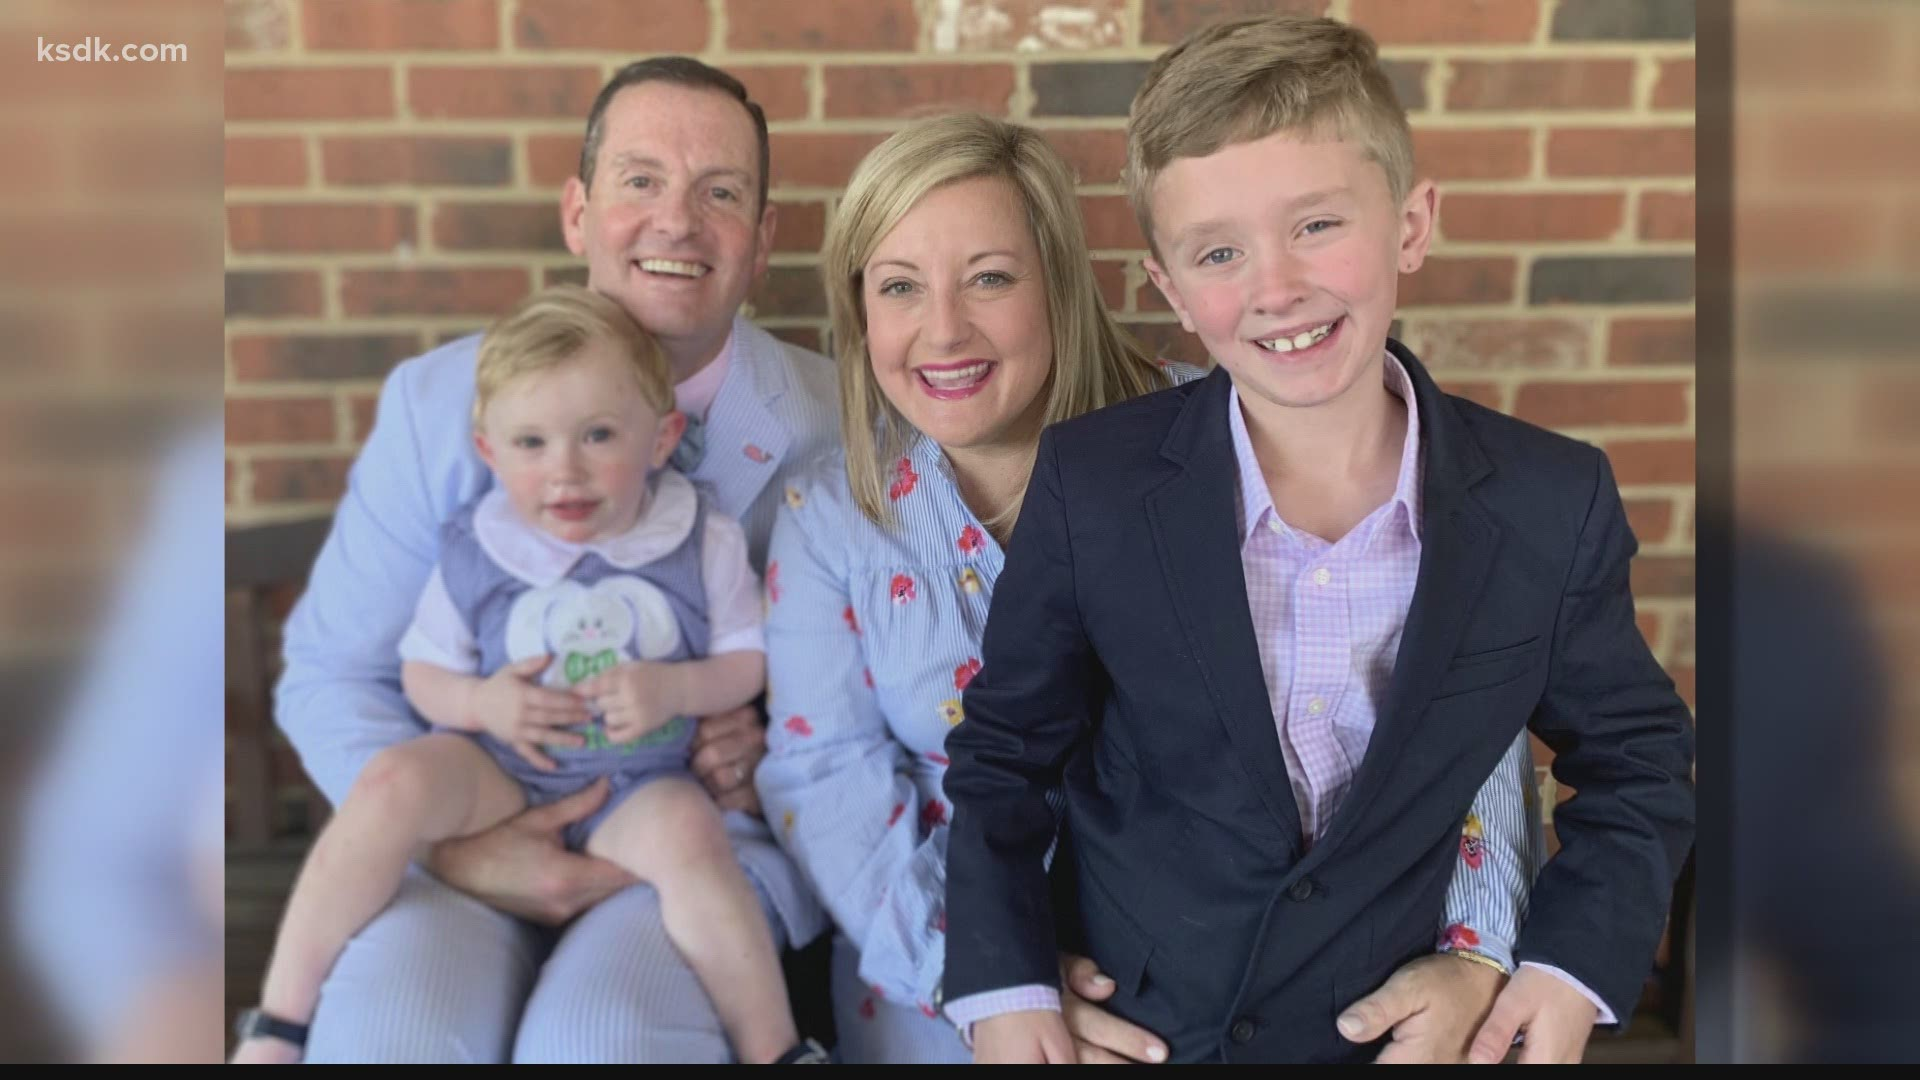 Couple Who Lost 2 Sons Helping Other Families Ksdk Com